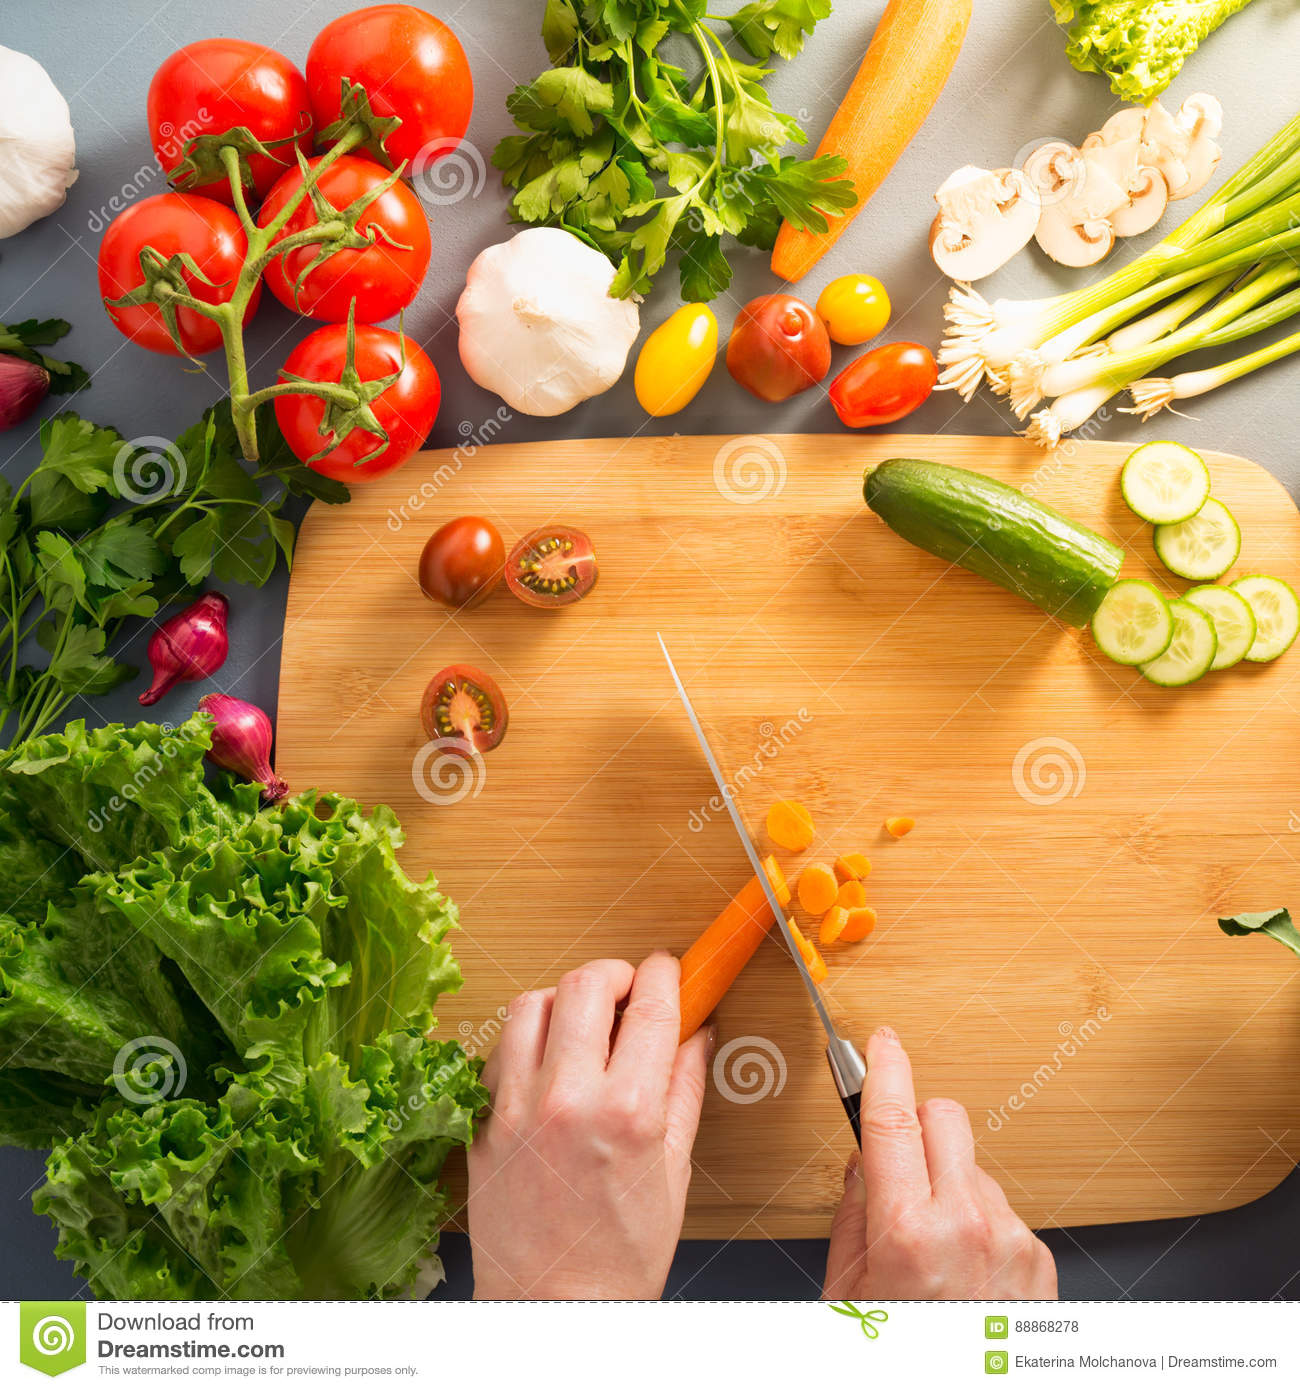 Top View Of Woman Cooking Healthy Food: Cutting Vegetable